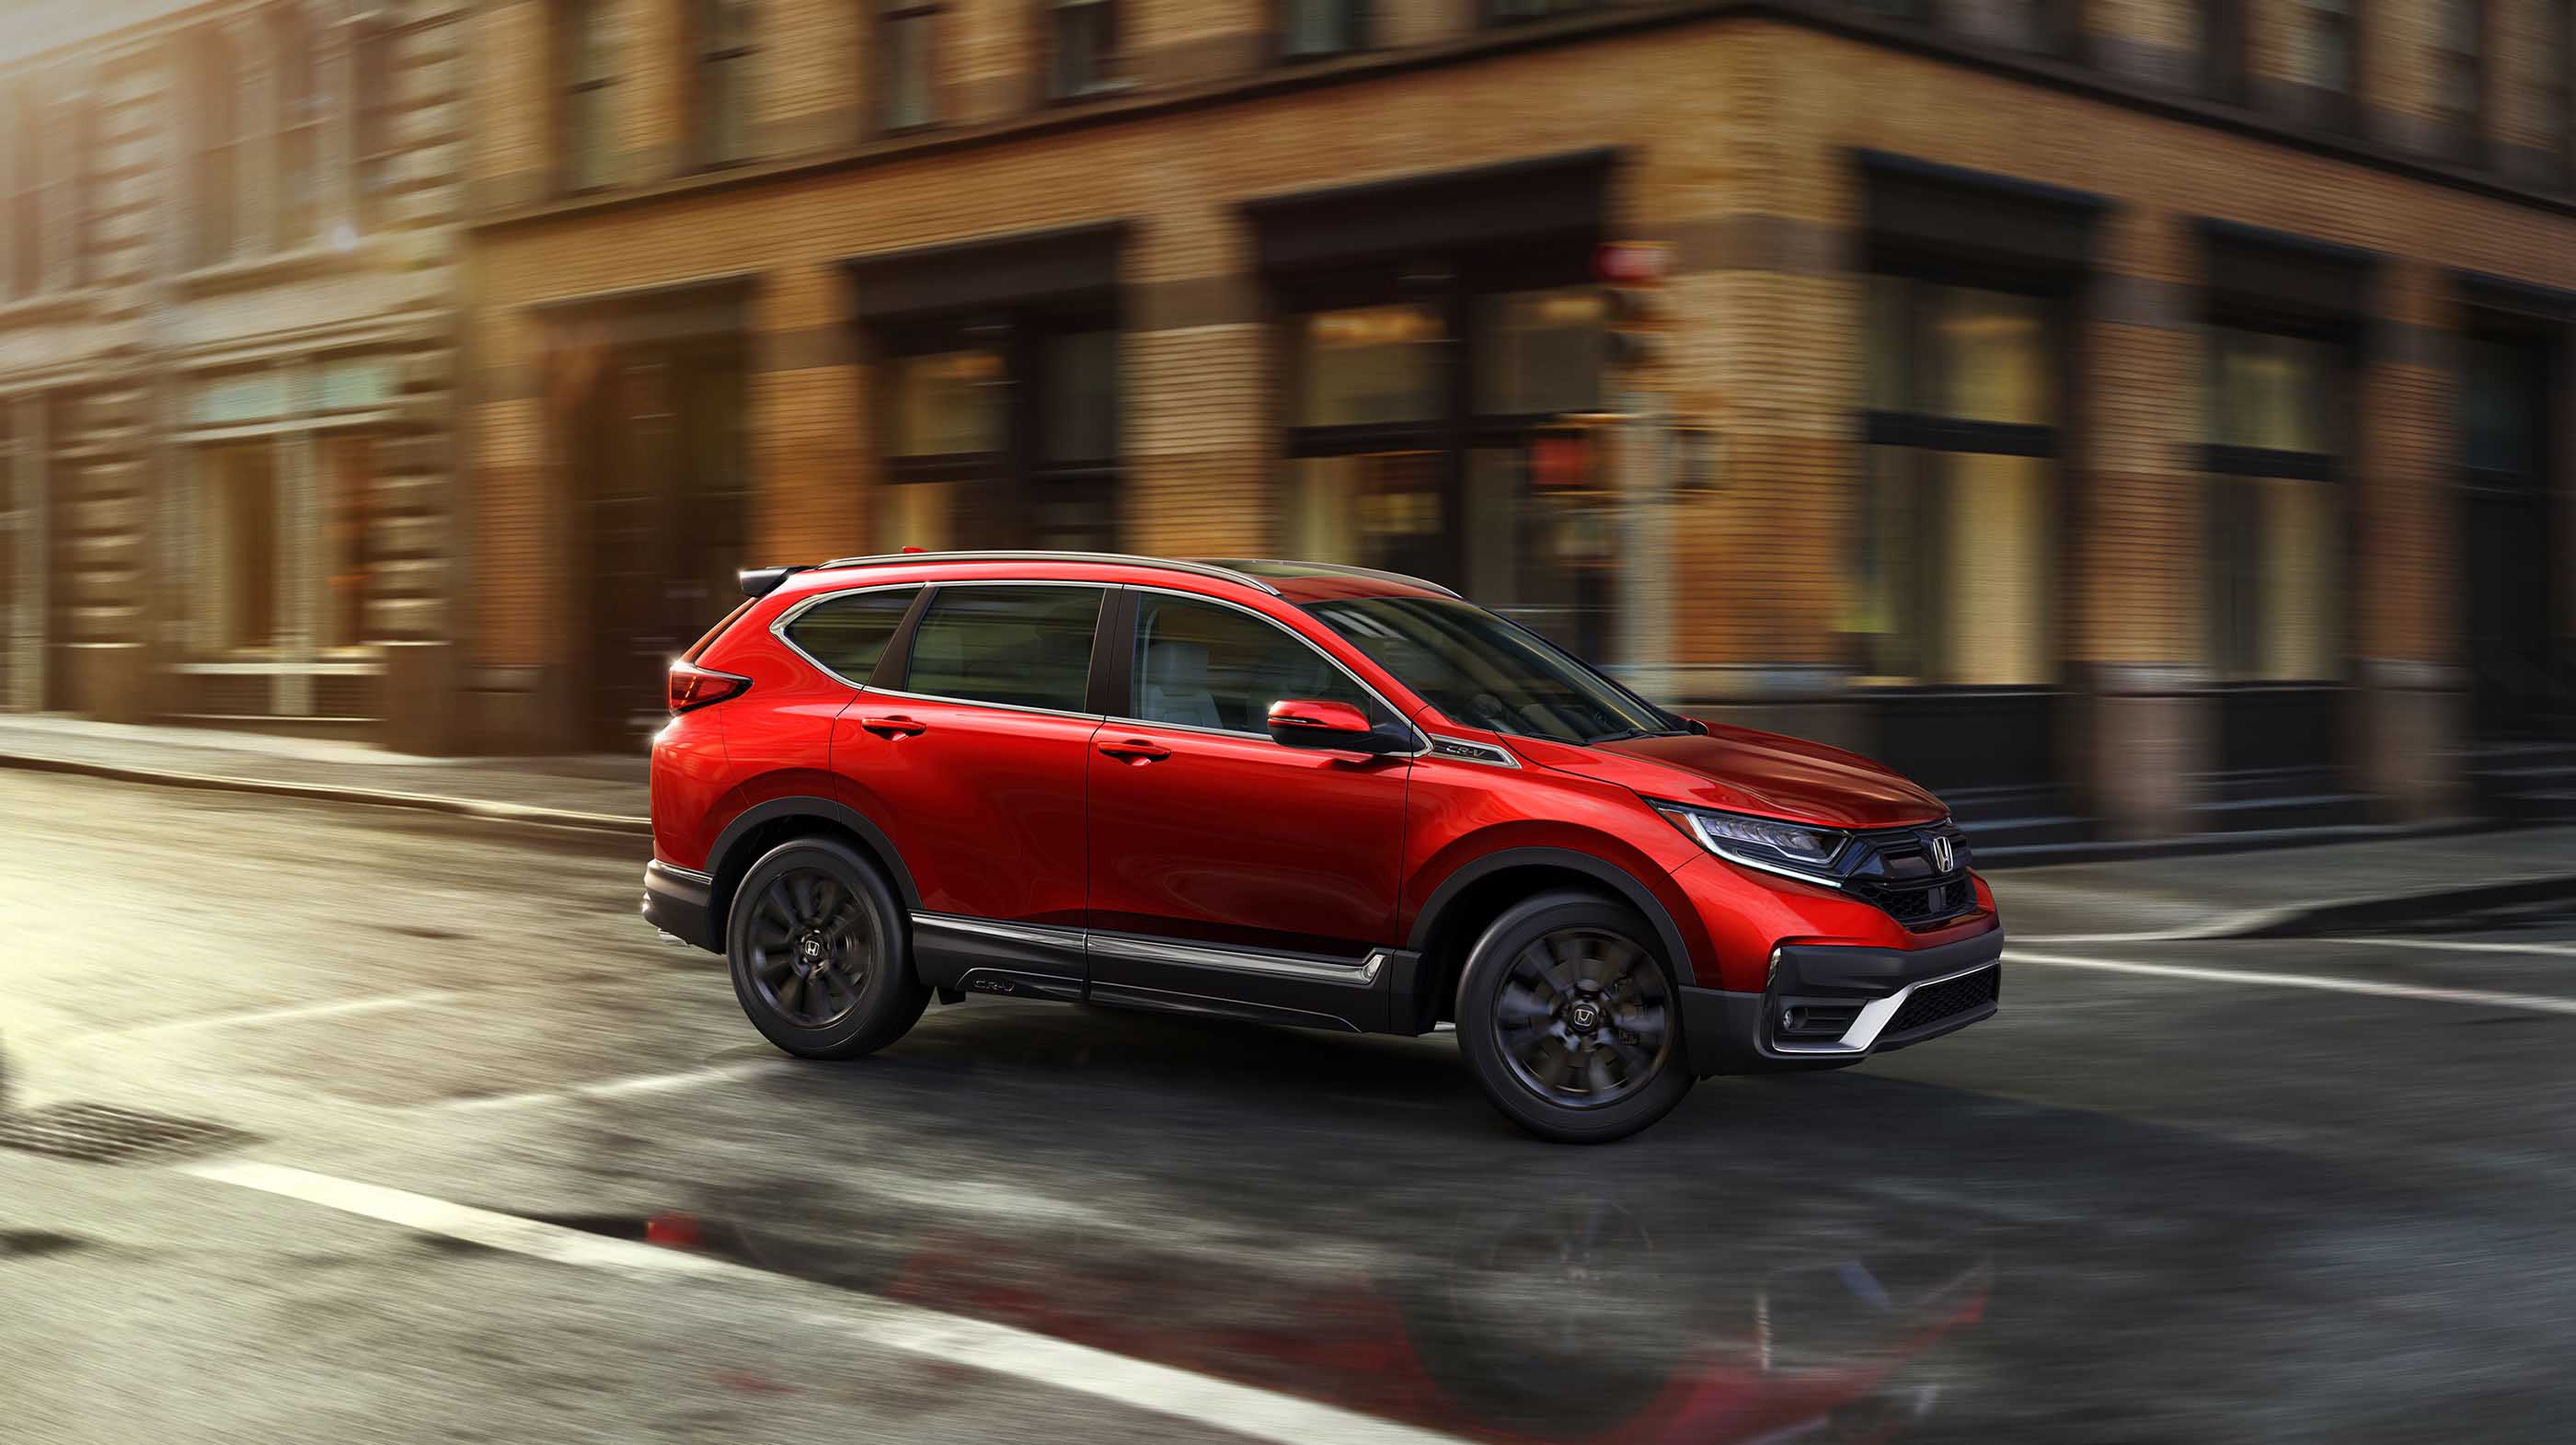 2020 CR-V for sale in Ohio, features